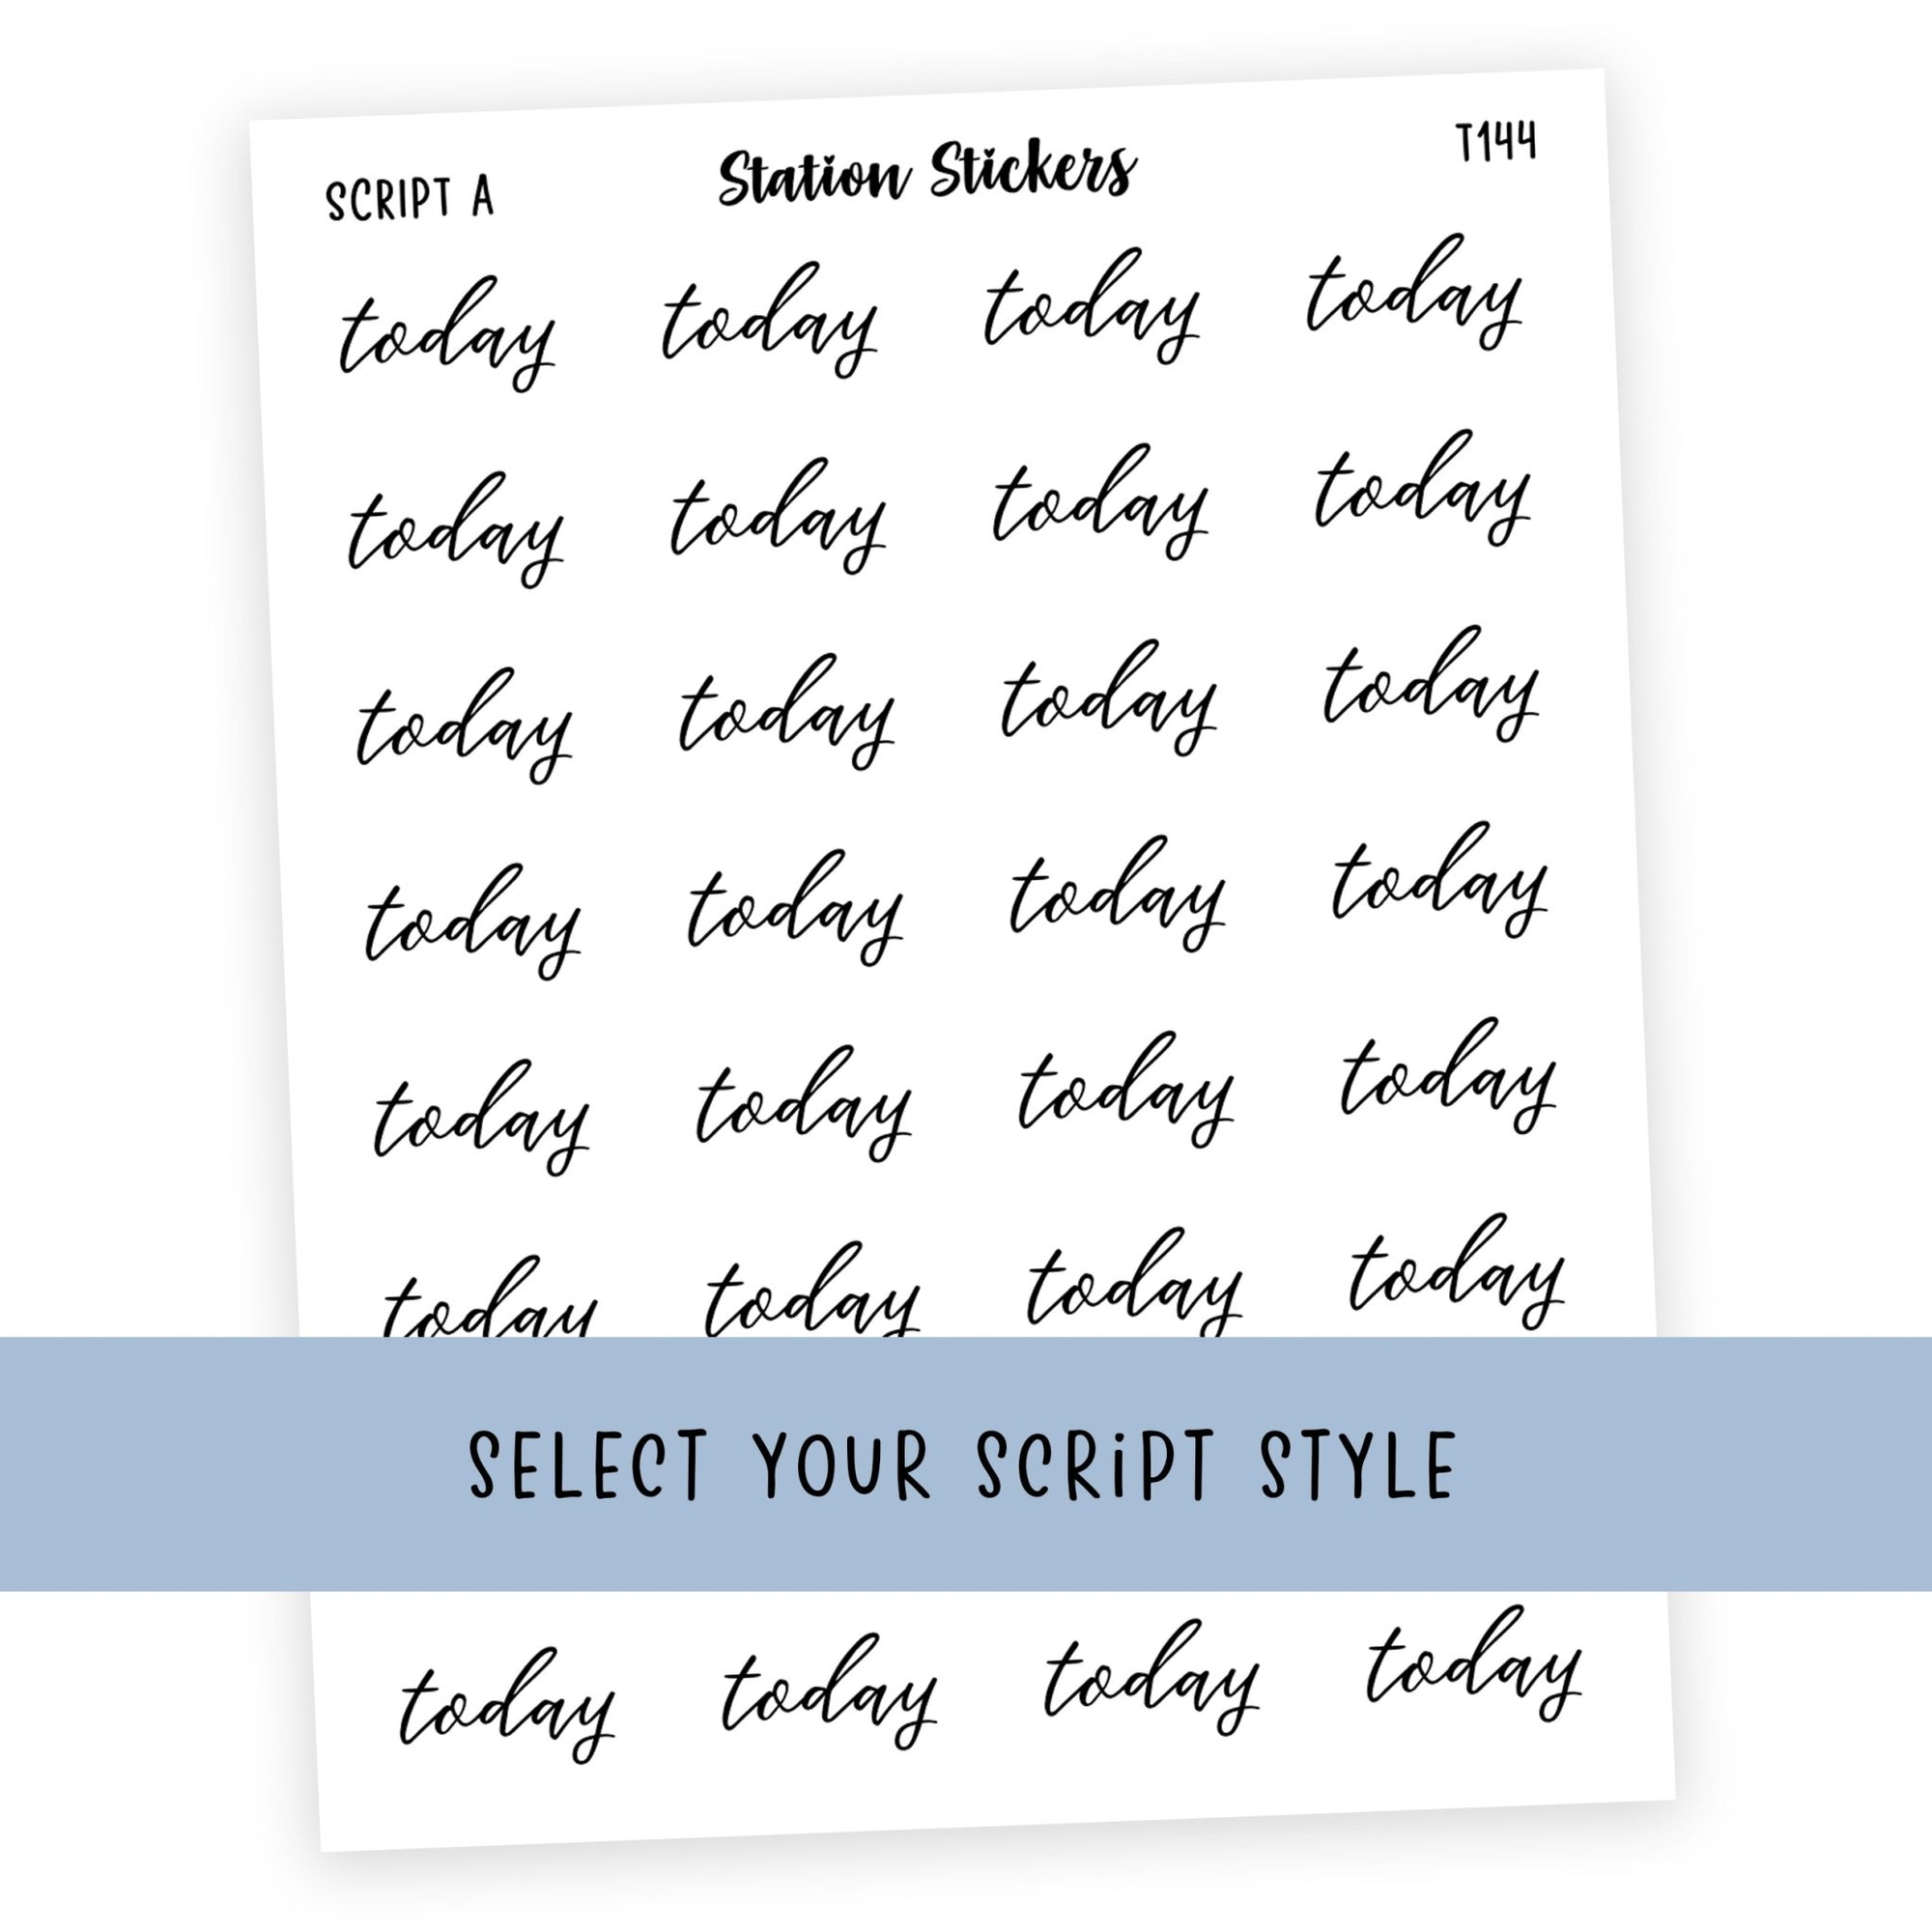 TODAY • SCRIPTS - Station Stickers